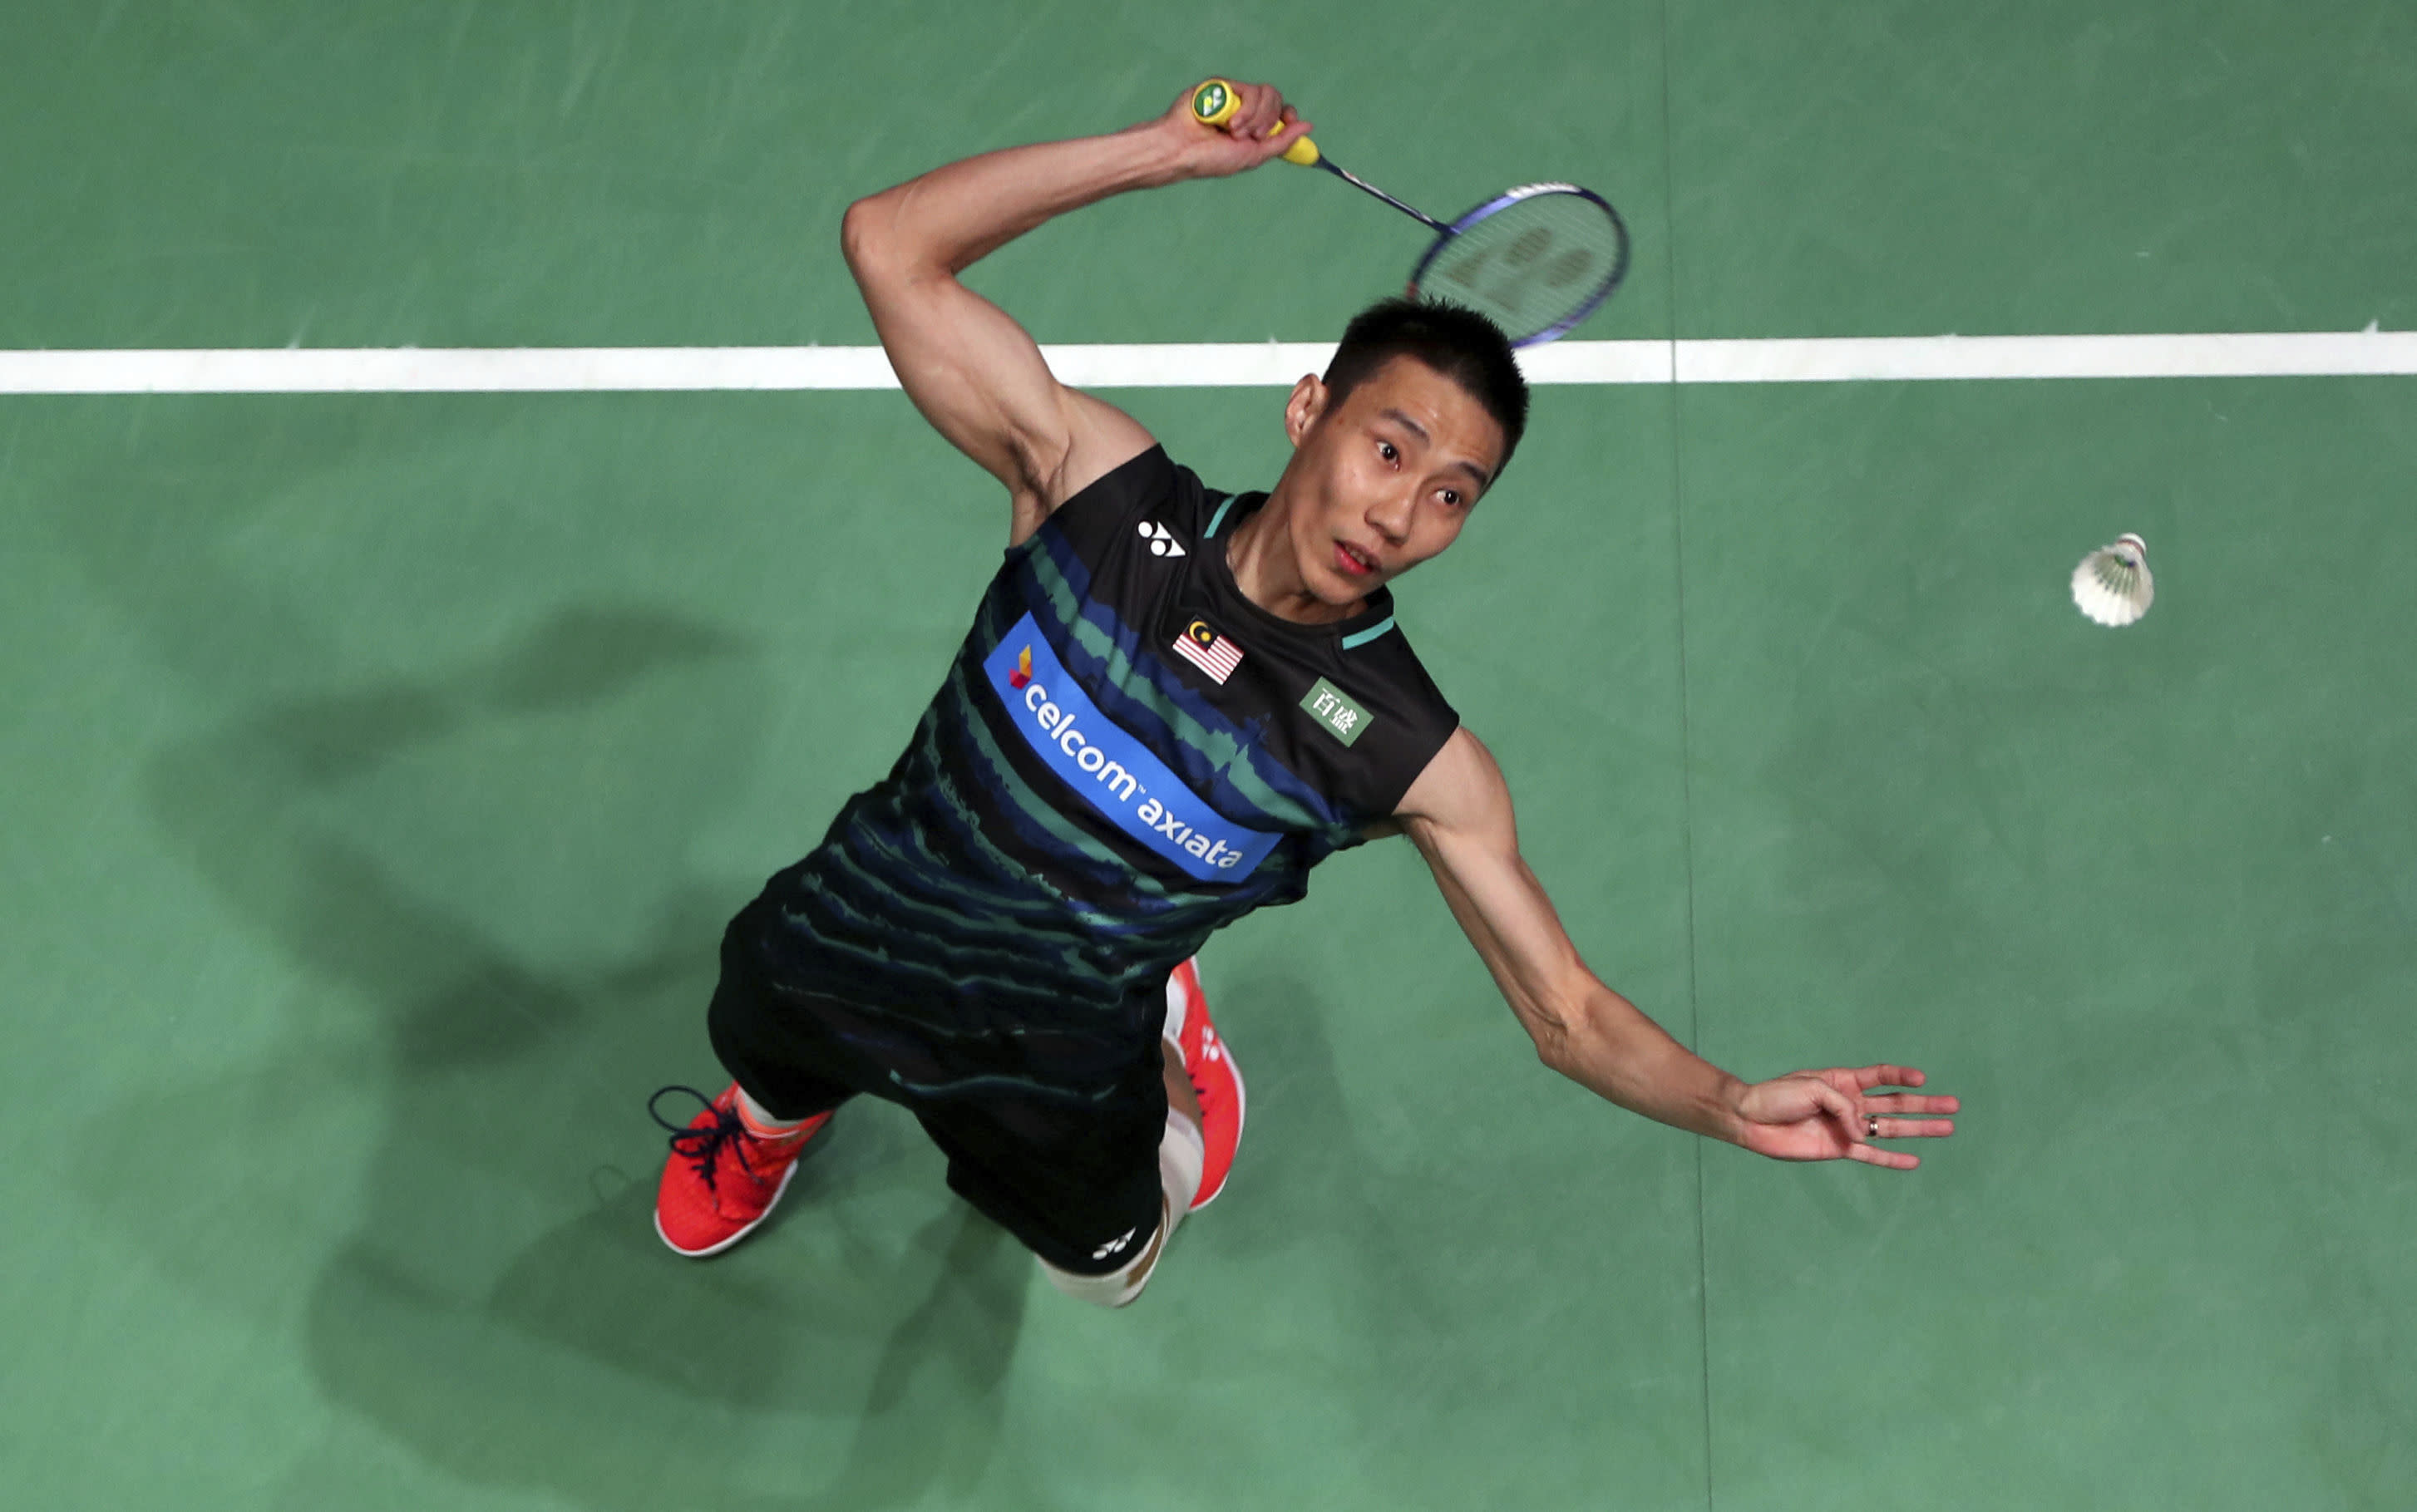 Olympic badminton champ upset by Thai at All England Open